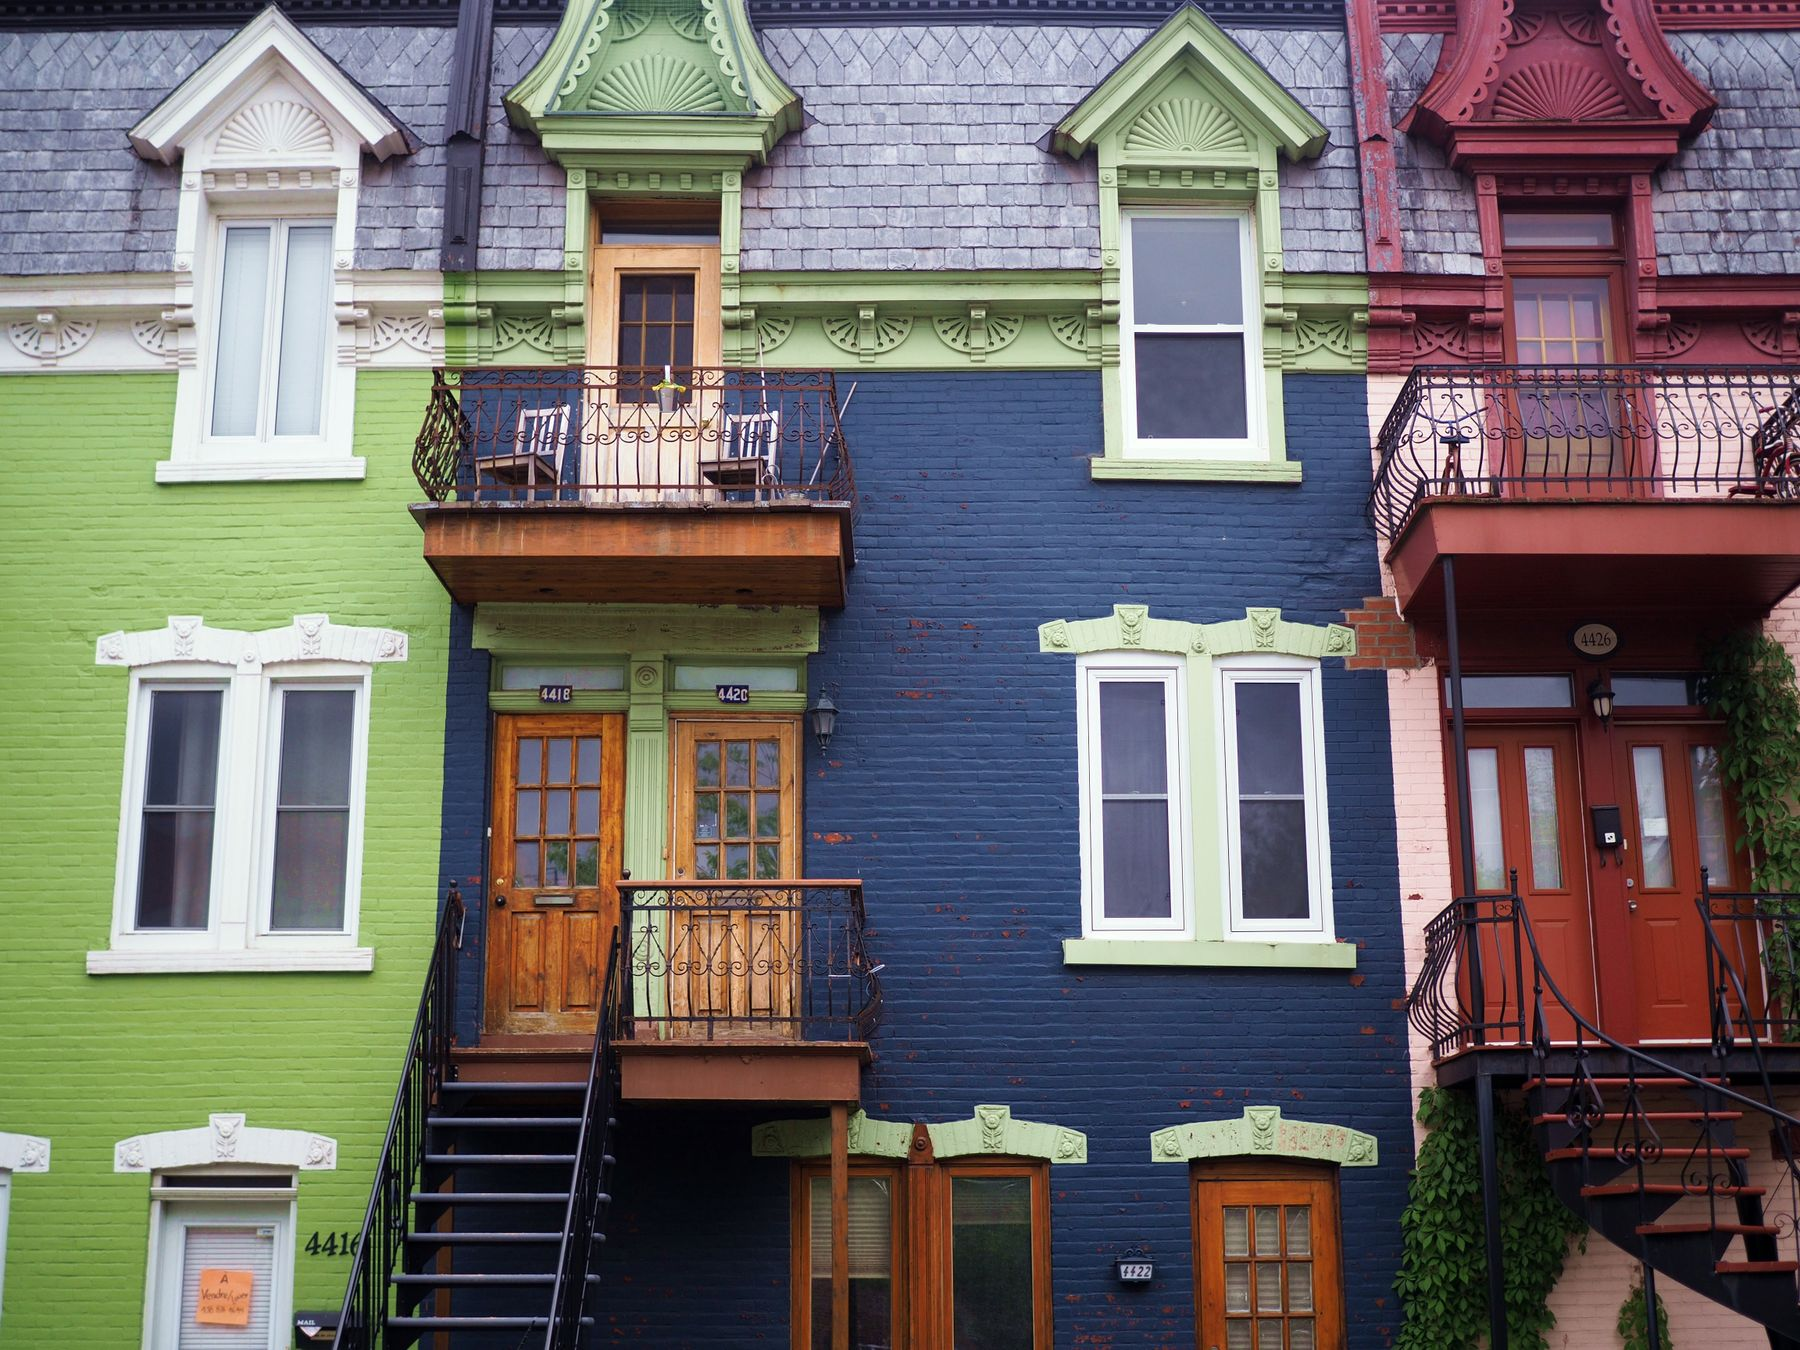 colourful houses in Montreal's Le Plateau